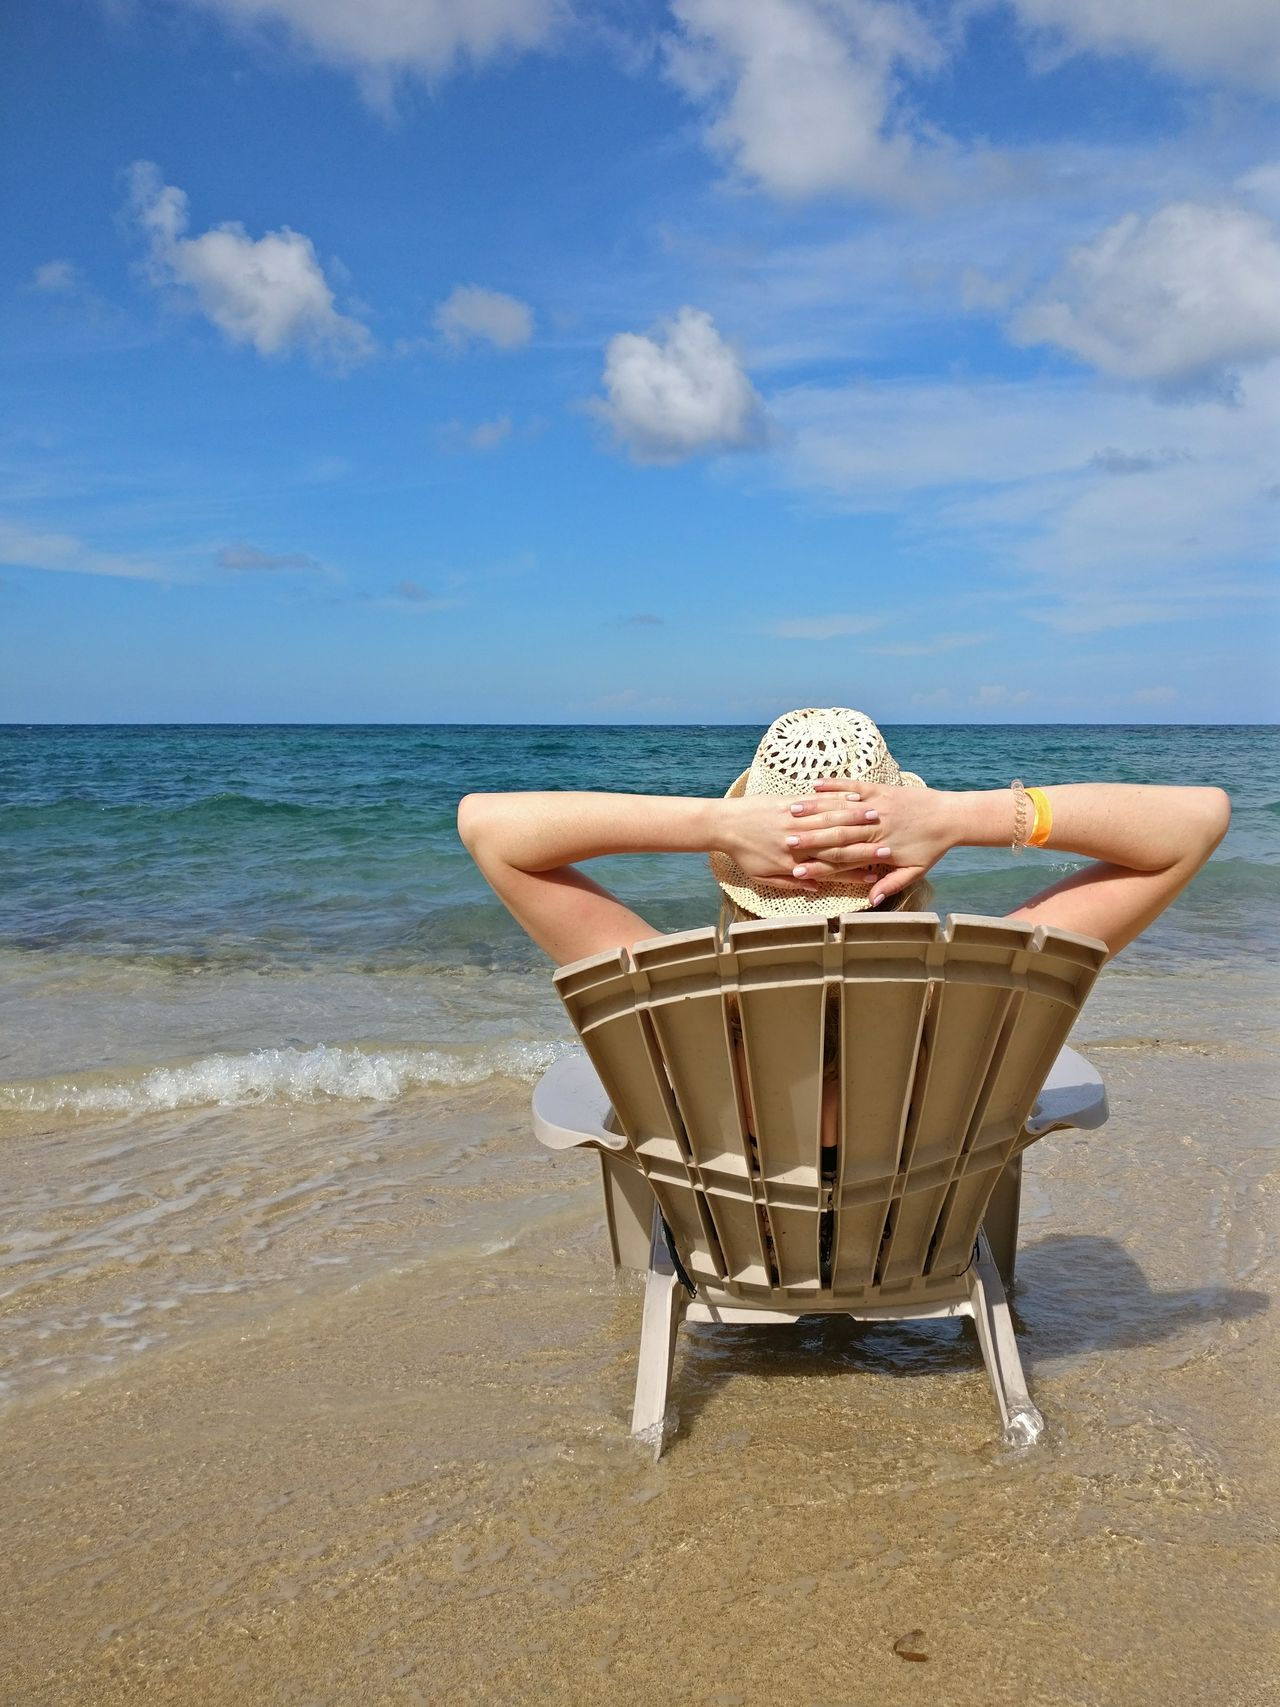 Beach Sea Blue Relaxation Vacations Sand Nature Travel Destinations Sky Clouds And Sky Caribbean Sea Tranquility Tranquil Scene Scenics Cloud - Sky Water Girl Woman Sitting On The Beach Beach Life Beach Day Beach Photography Sommergefühle Breathing Space